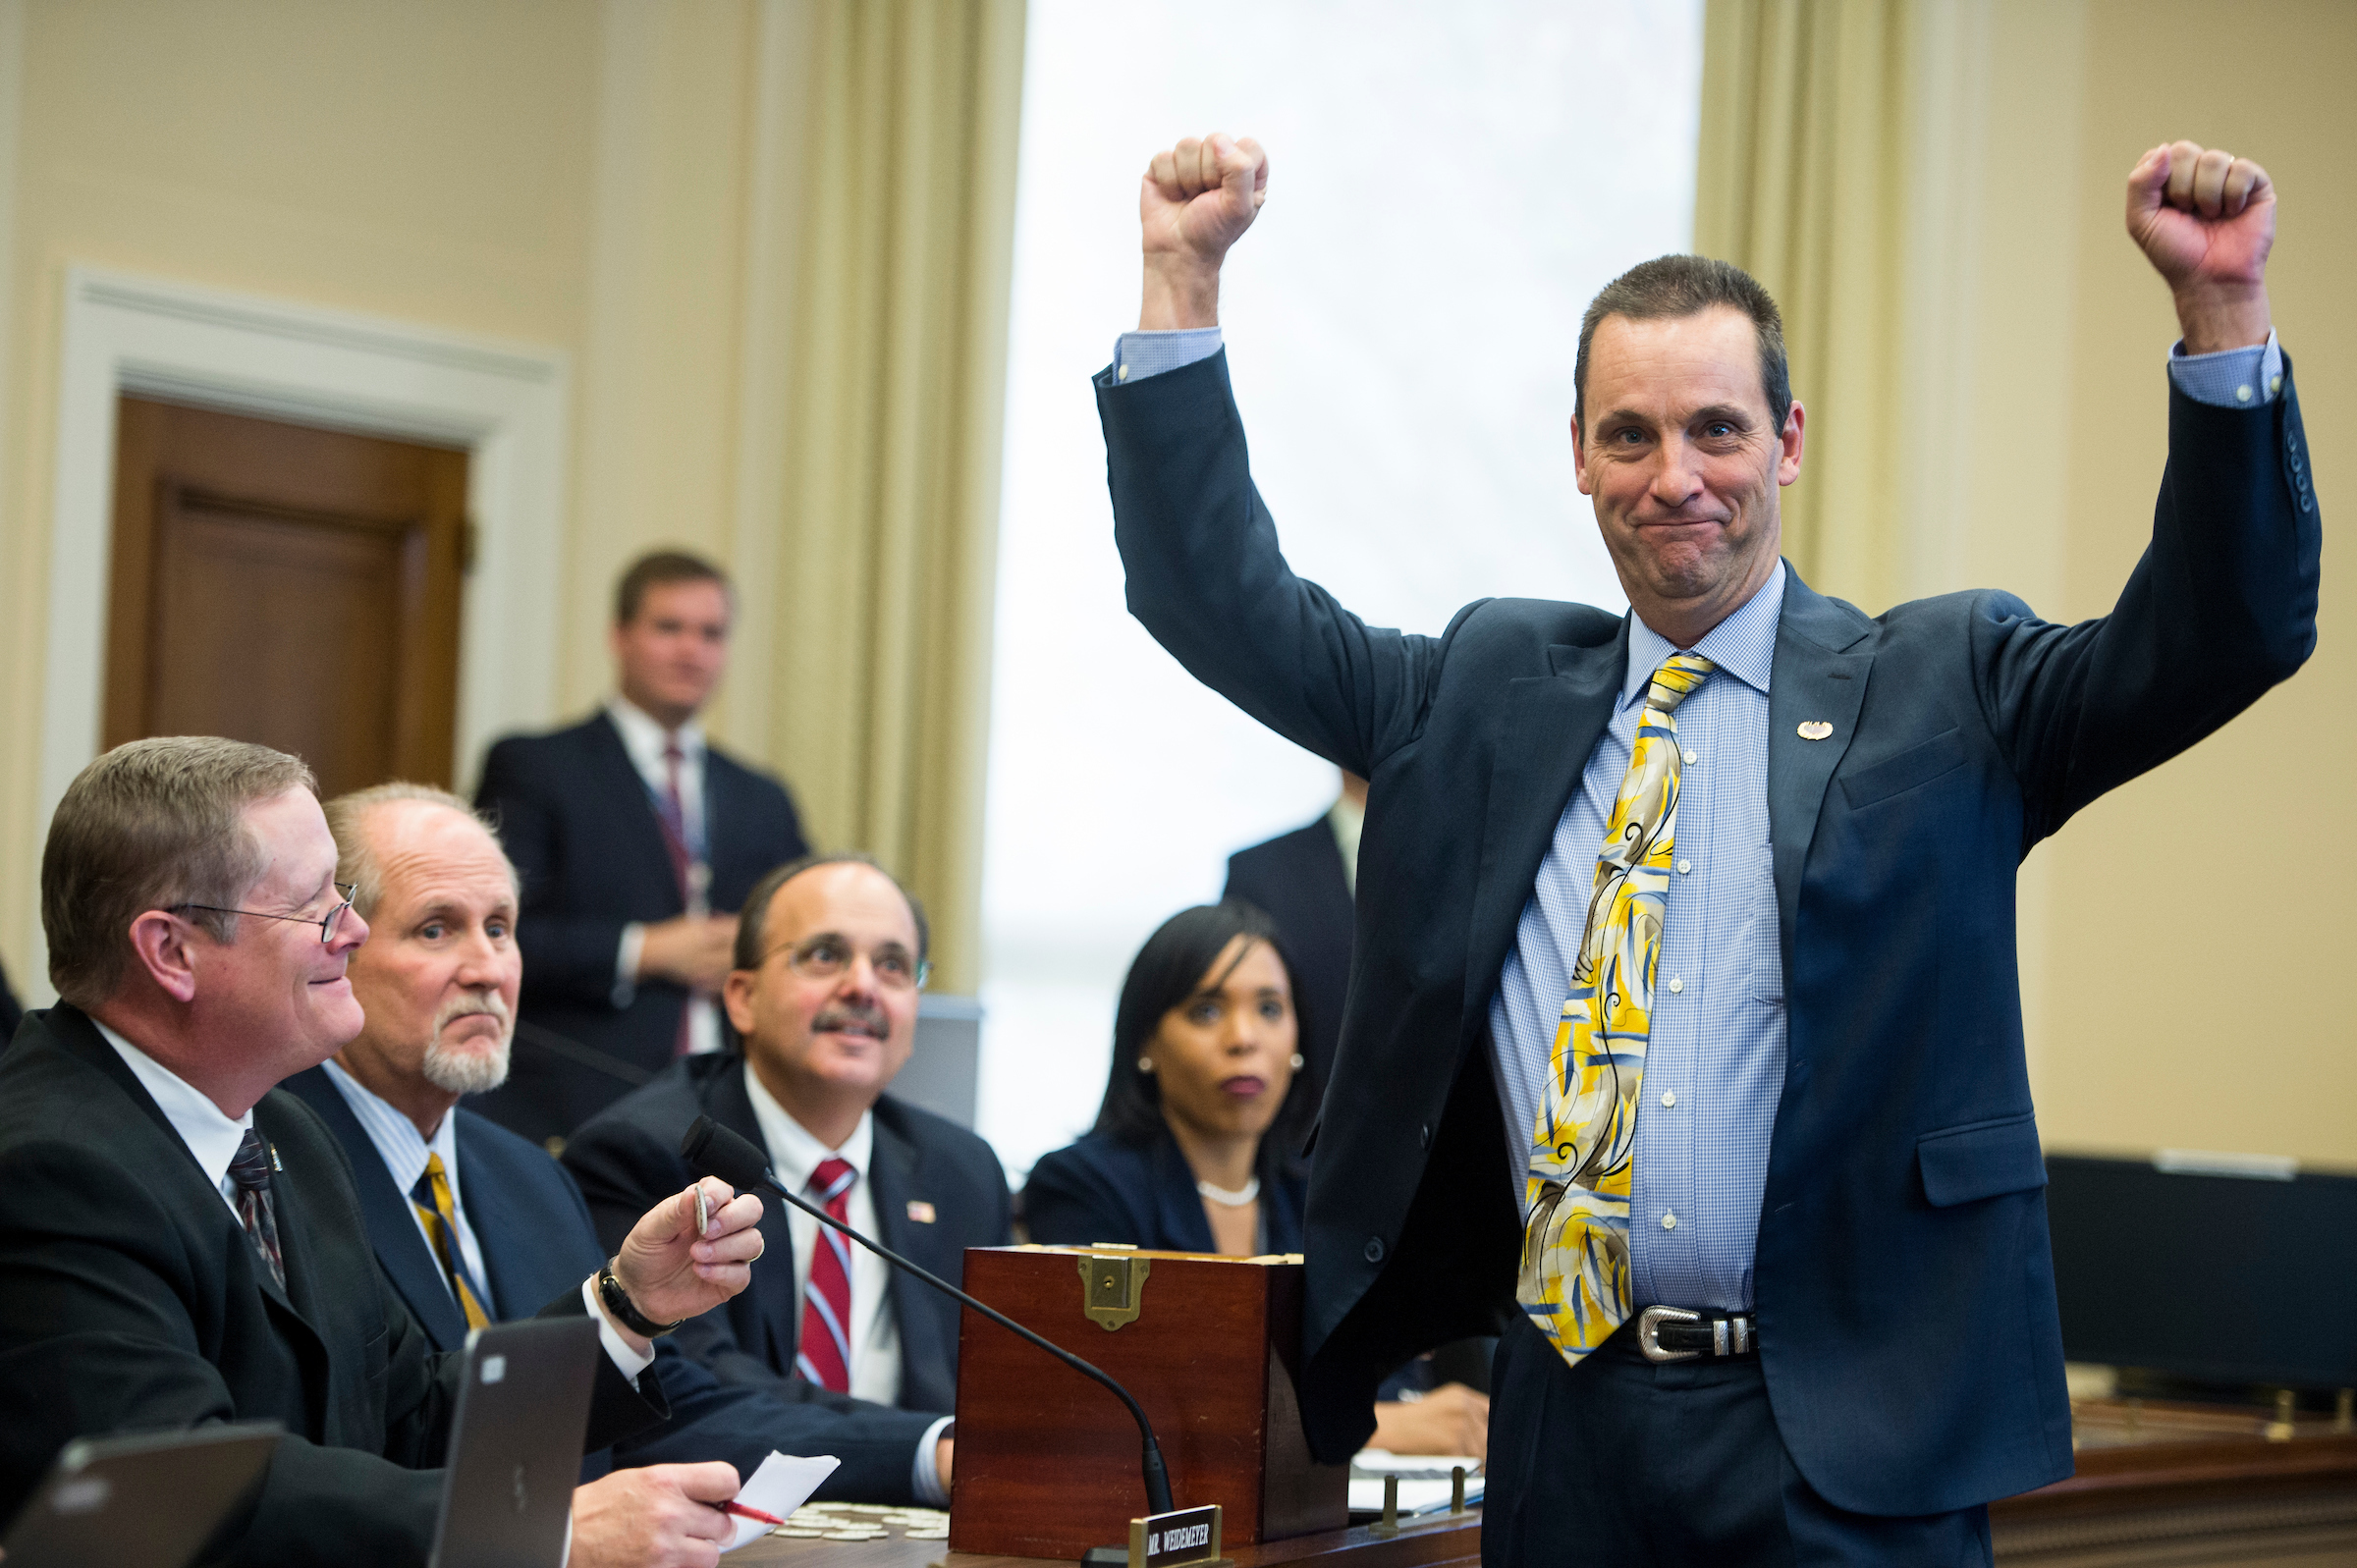 California GOP Rep. Steve Knight celebrated in 2014 when he drew the first pick for a congressional office. Will he be celebrating his re-election this November? Democrats hope not.